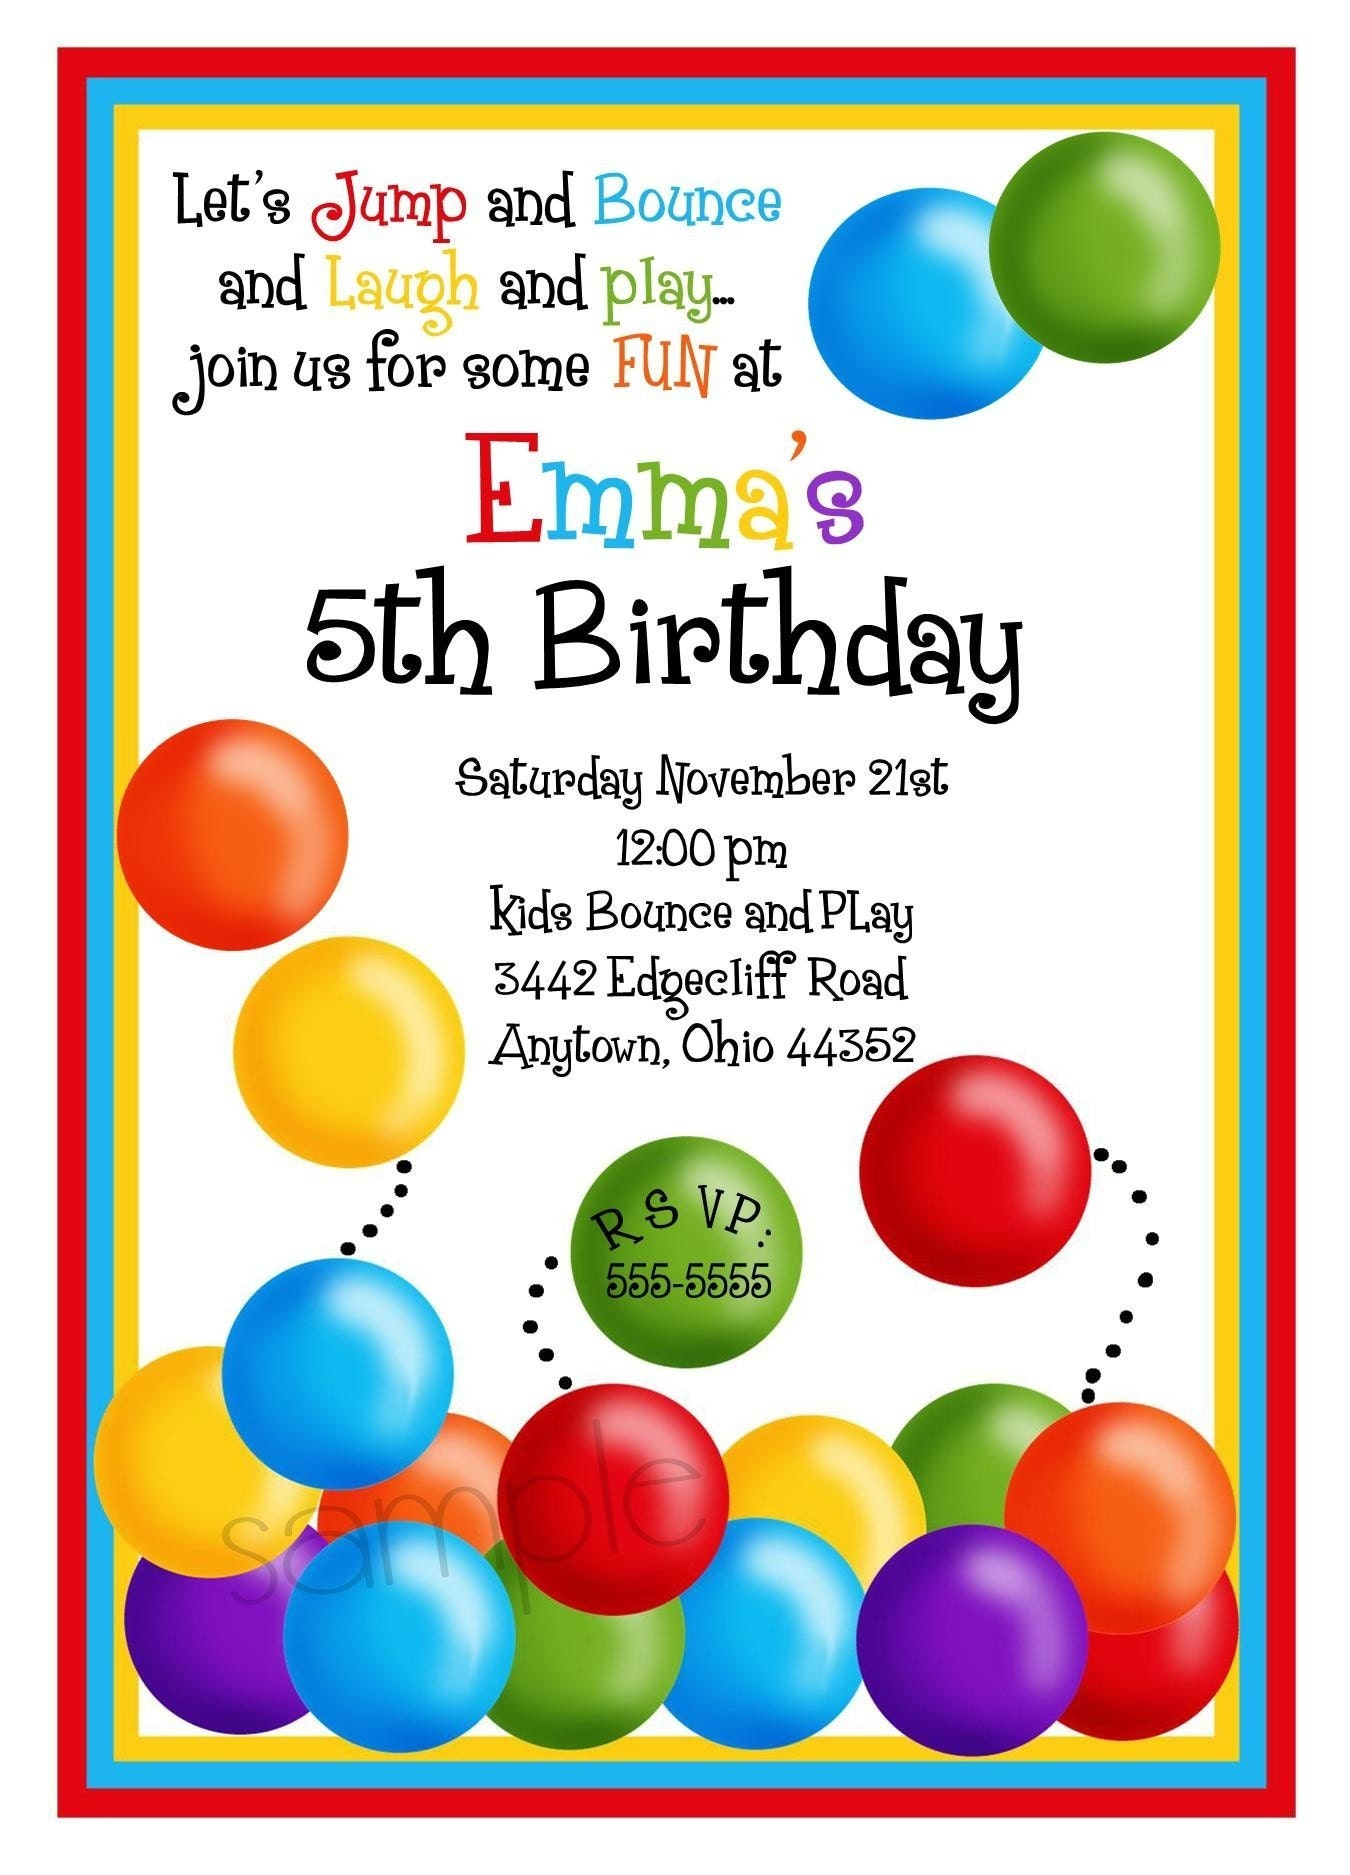 Ball Pit Invitations Ball Pit birthday Party Bouncy House